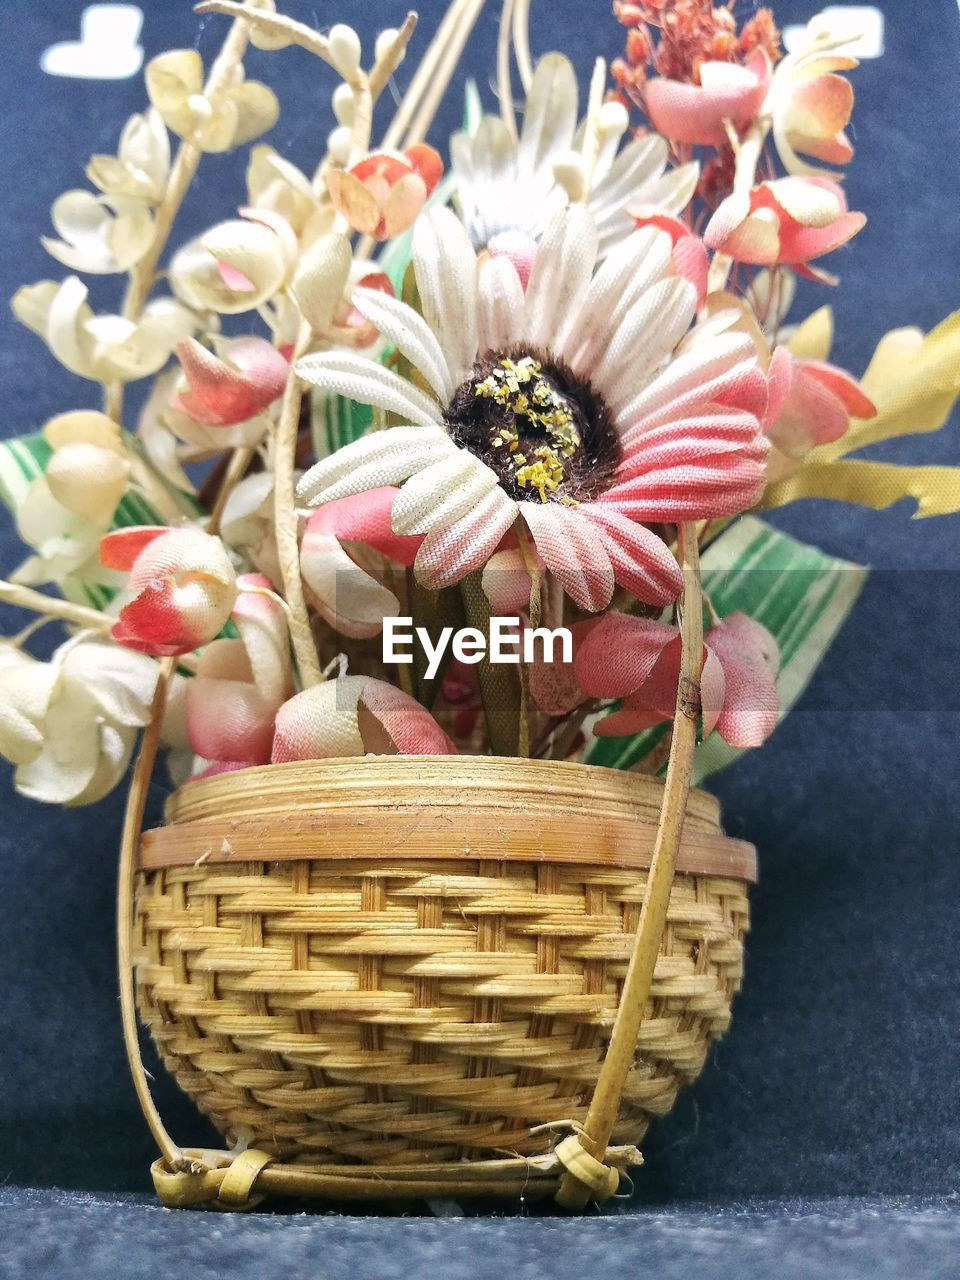 basket, flower, freshness, no people, day, outdoors, close-up, fragility, food, flower head, beauty in nature, nature